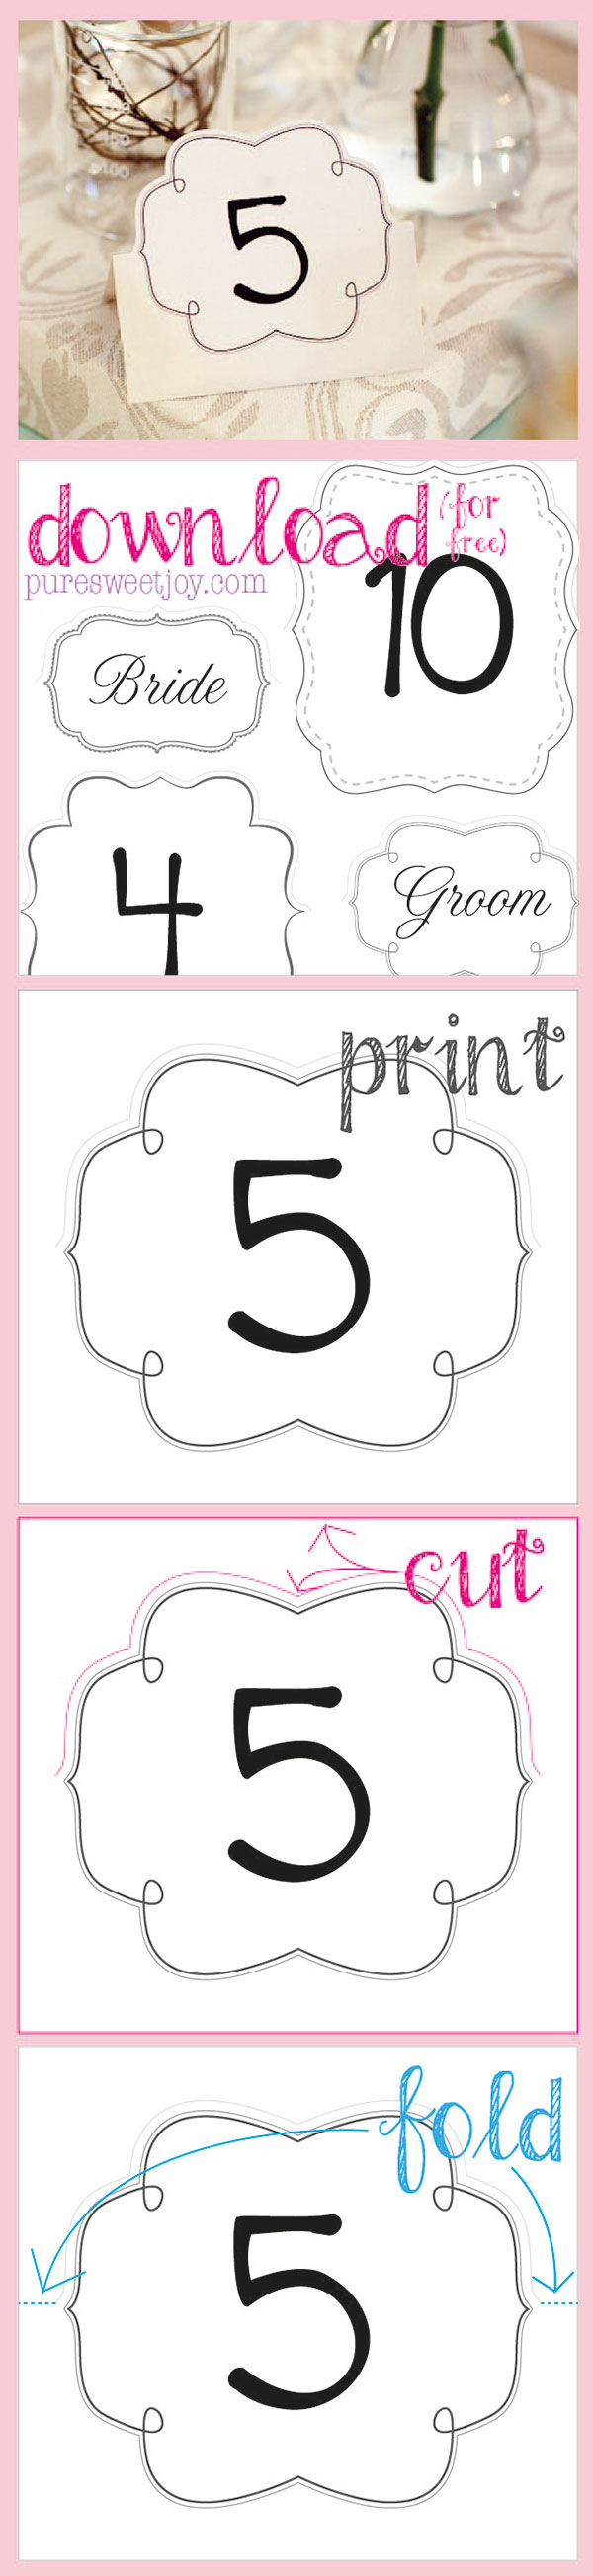 Follow these simple instructions to make your own cute paper table numbers // Free printable download